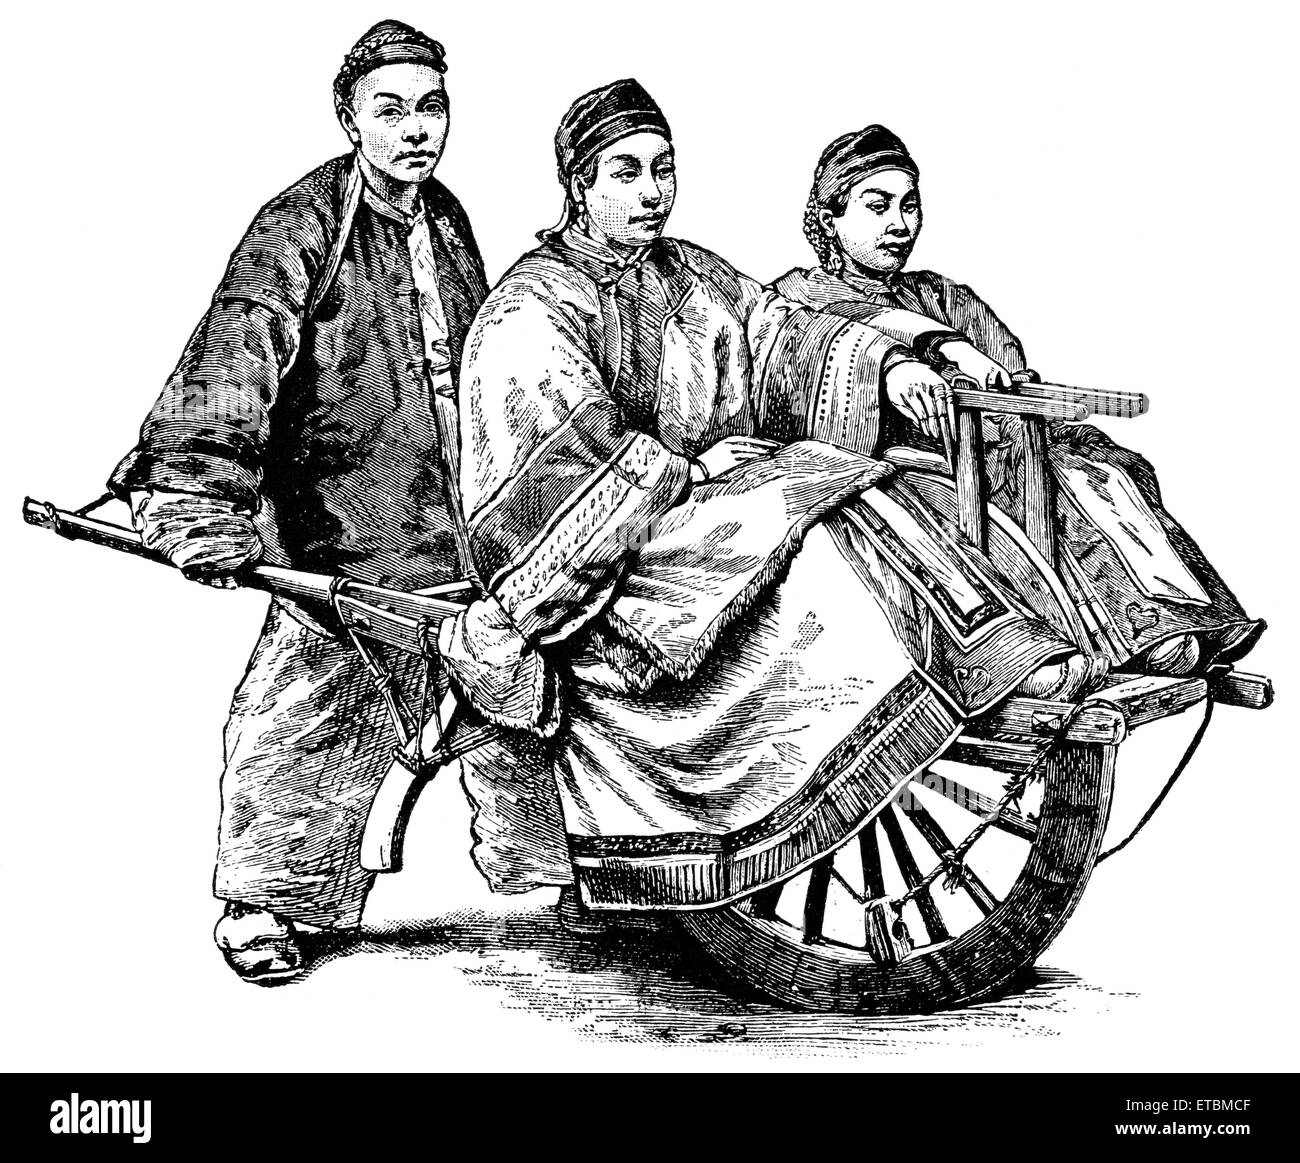 Two People Being Transported by Single-Wheel Cart, China, 'Classical Portfolio of Primitive Carriers', by - Stock Image